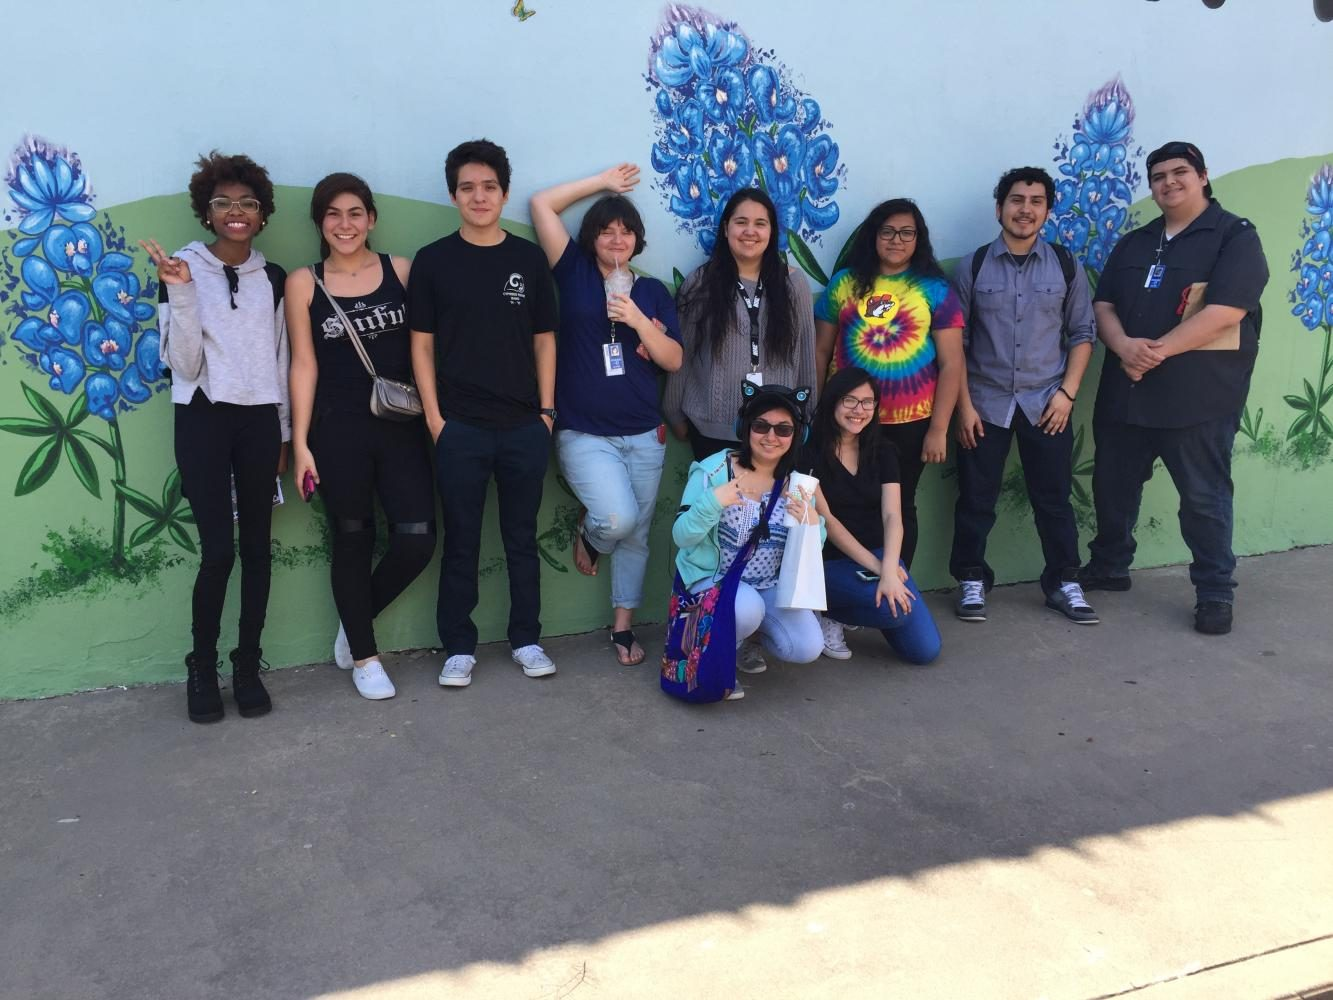 CRHS+Press+students+attend+the+ILPC+state+journalism+convention+in+Austin+April+22-23.+Pictured+%28standing%29+are%3A+Jassmen+King%2C+Jennifer+Rodriguez%2C+Jonathan+Estrada%2C+Ashley+Rowe%2C+Hailey+Procter%2C+Lizeth+Gonzalez%2C+Rodrigo+Rojas+and+Luis+Duque%3B+and+%28kneeling%29+Dominique+Escobar+and+Gabriela+Rodriguez.